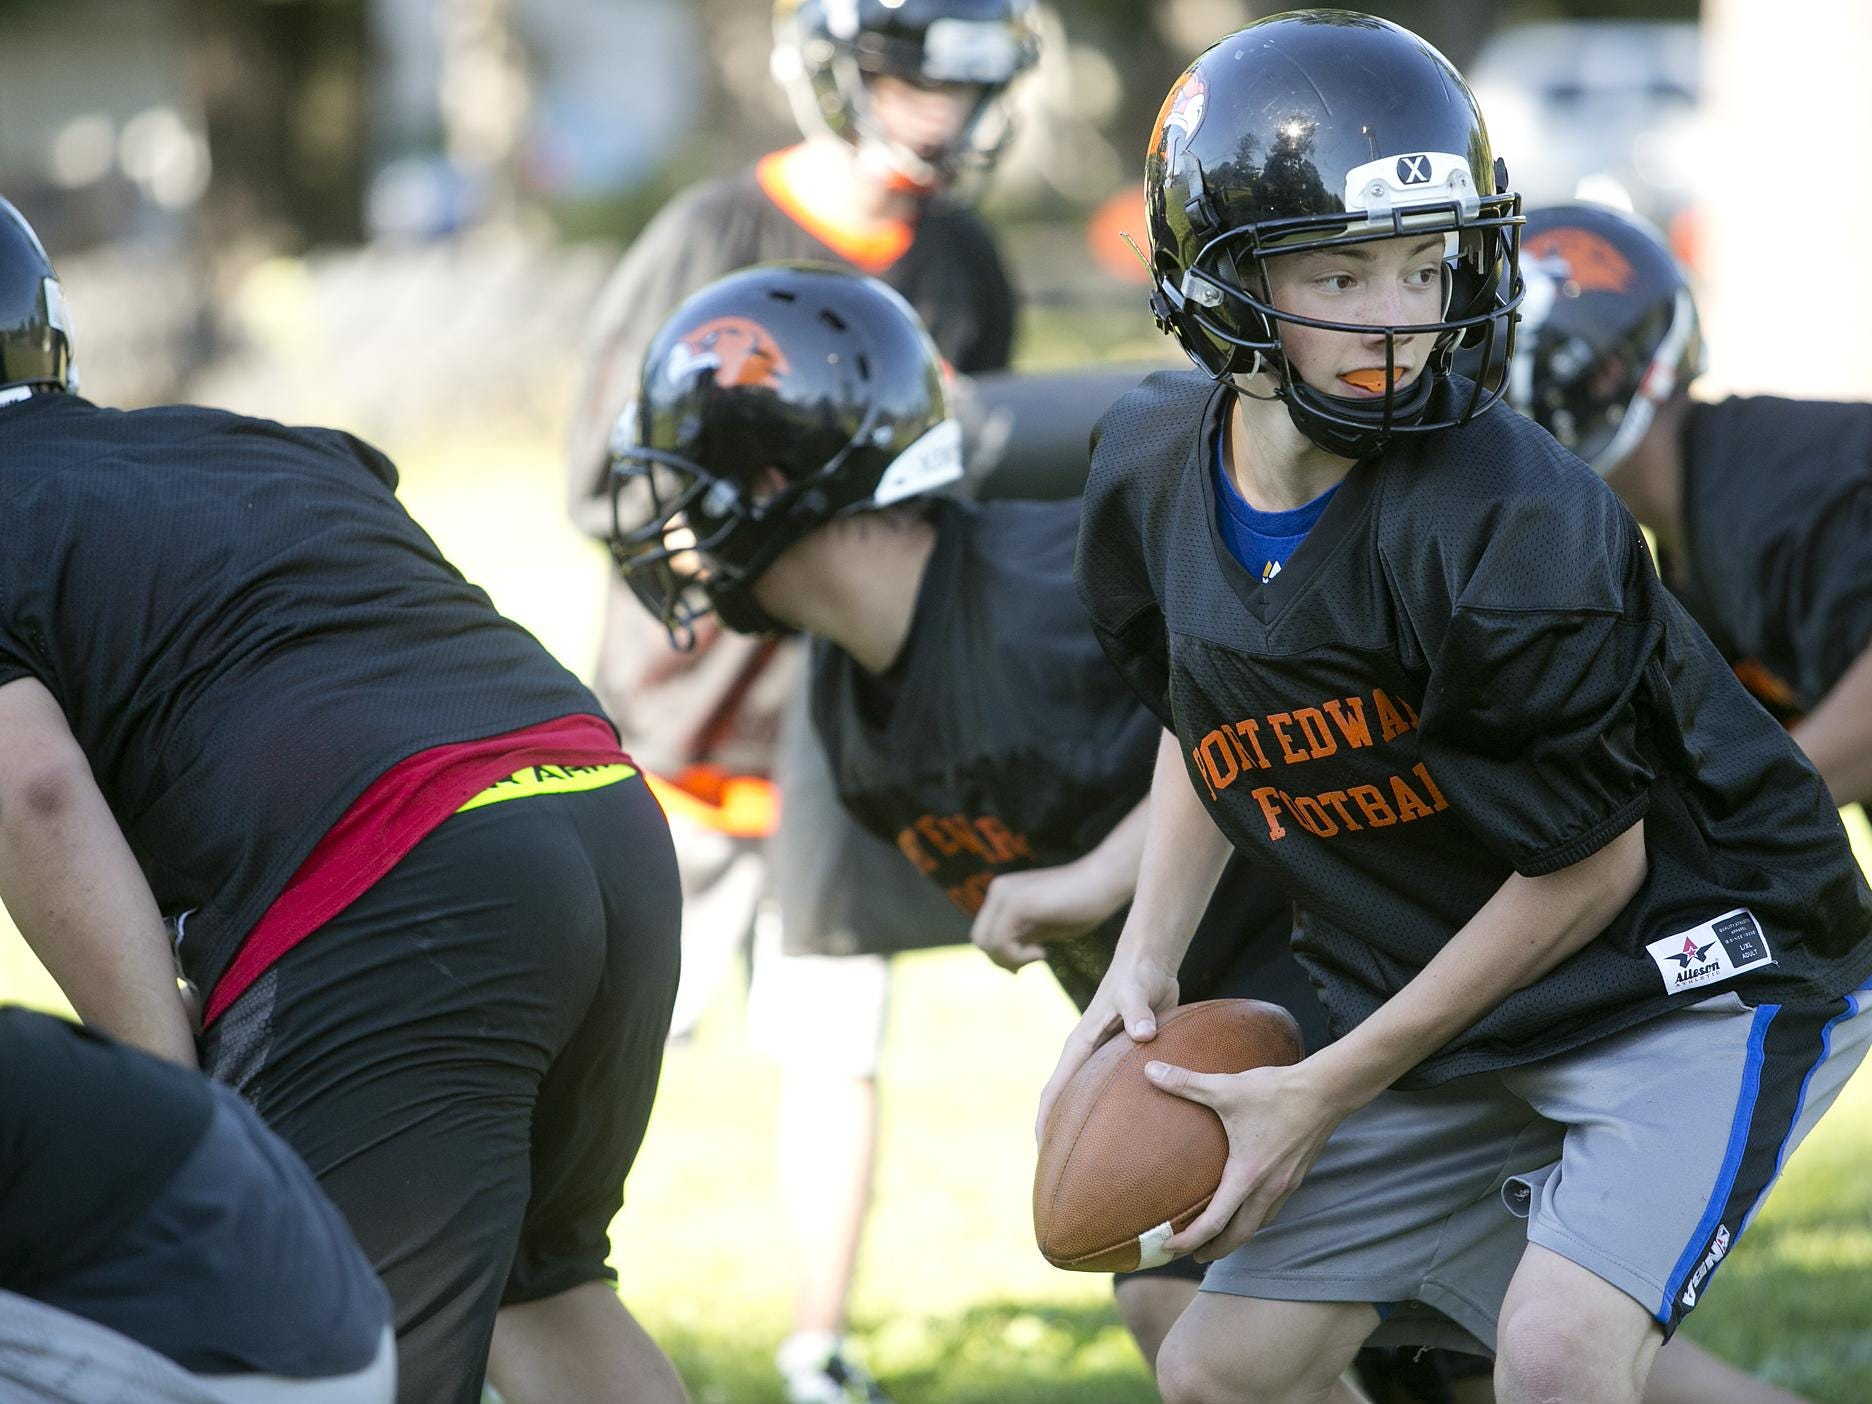 Quarterback Ian Gibbs looks to hand off the ball during the first day of football practice at John Edwards High School, Tuesday, Aug. 4, 2015.